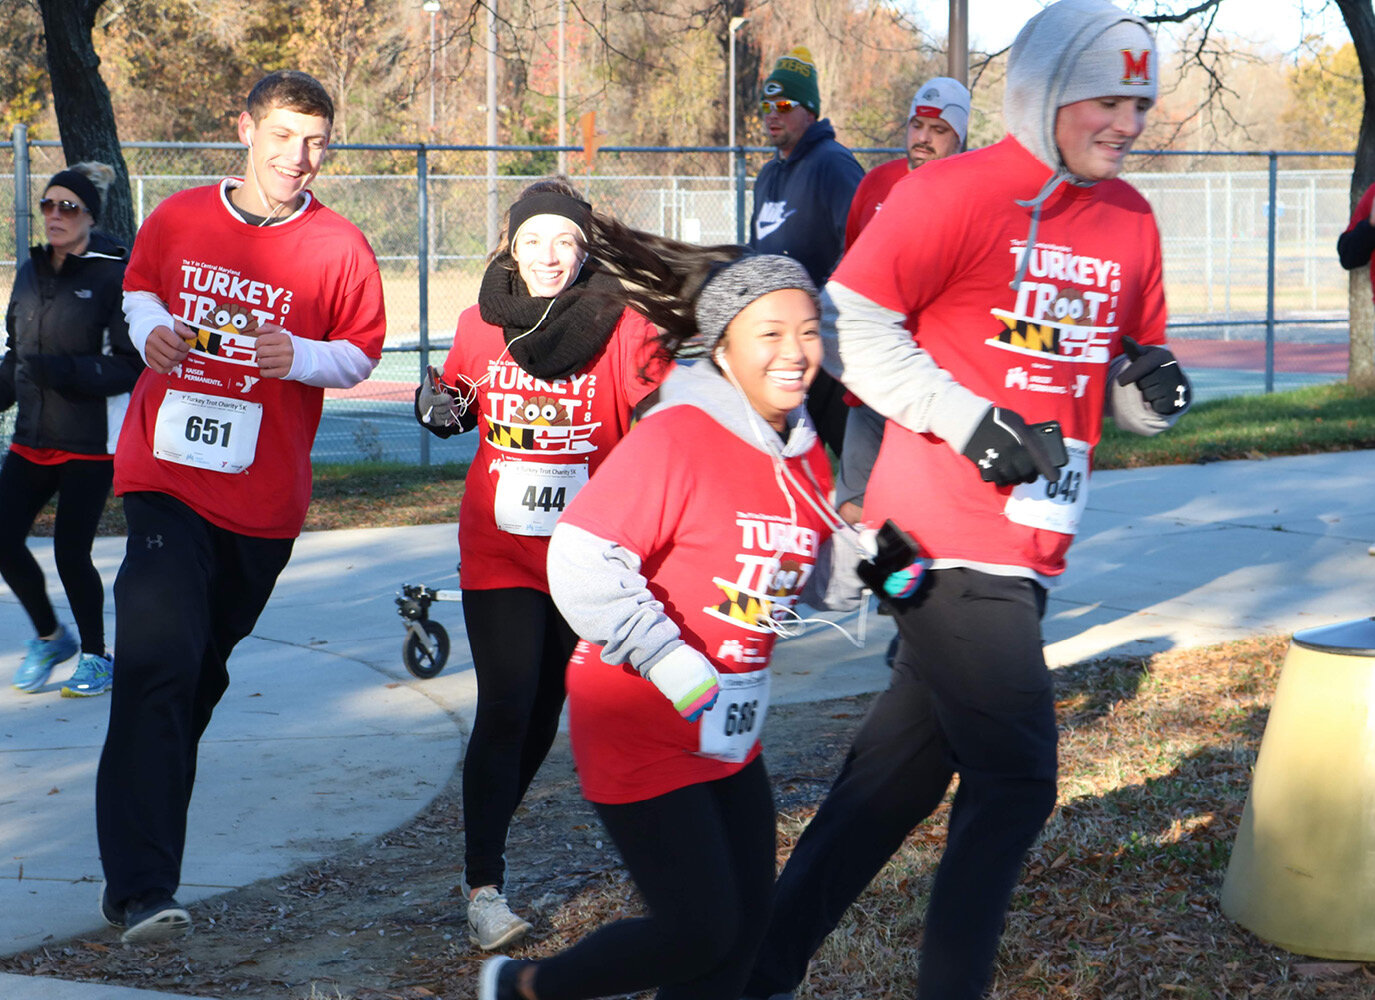 TurkeyTrotPhotoSelection_330x240PX7.jpg